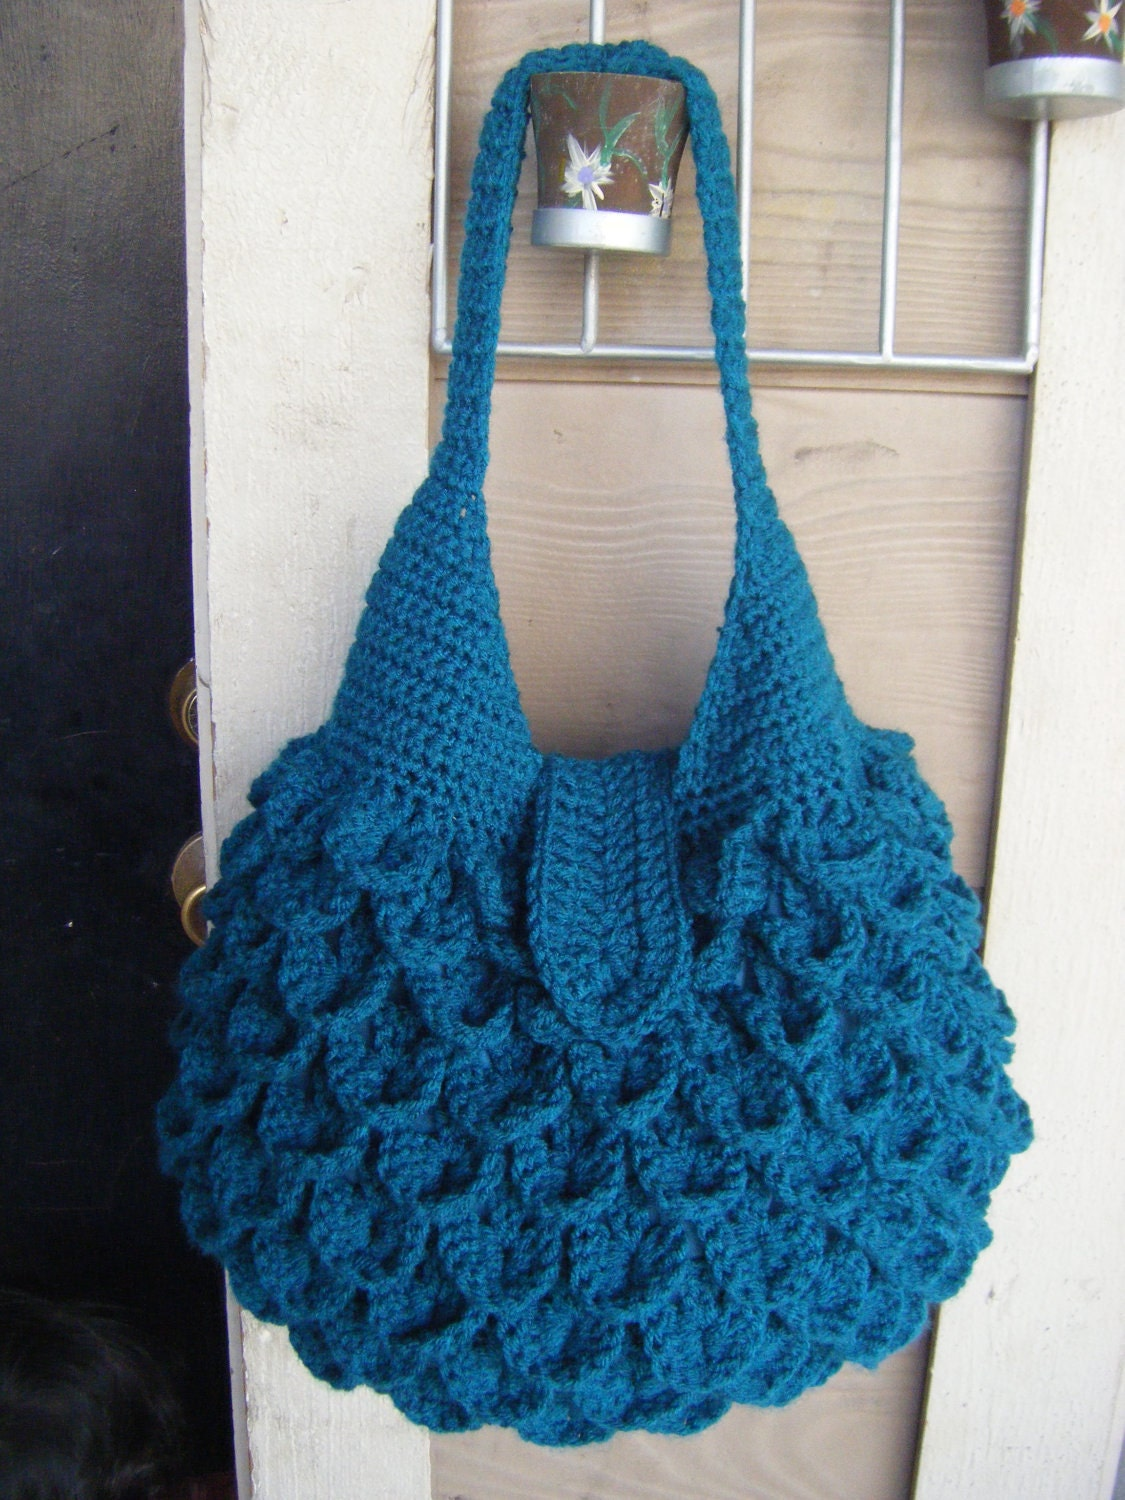 Crochet Hobo Bag Pattern : Crochet Crocodile Bag Pattern PERMISSION SELL by NatalieSpot